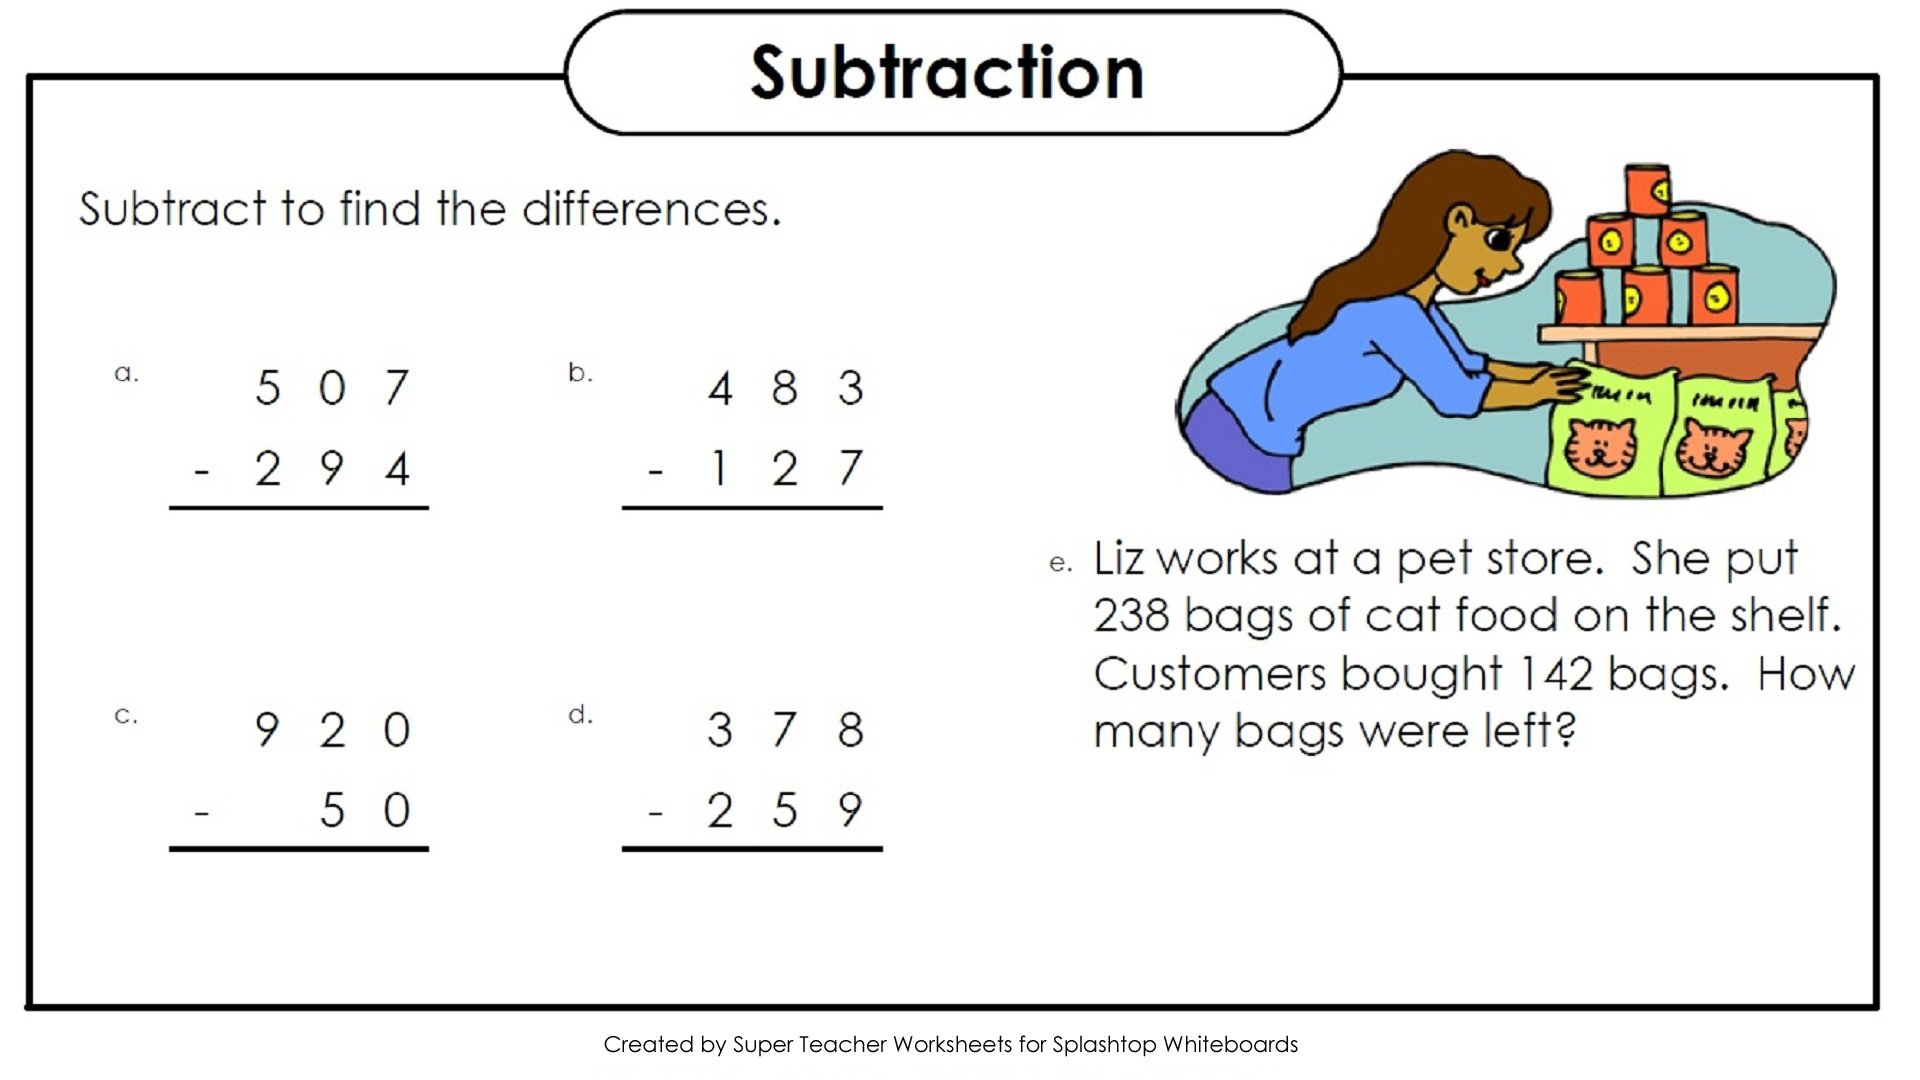 Worksheets Super Teacher Worksheets Login splashtop whiteboard background graphics three digit subtraction